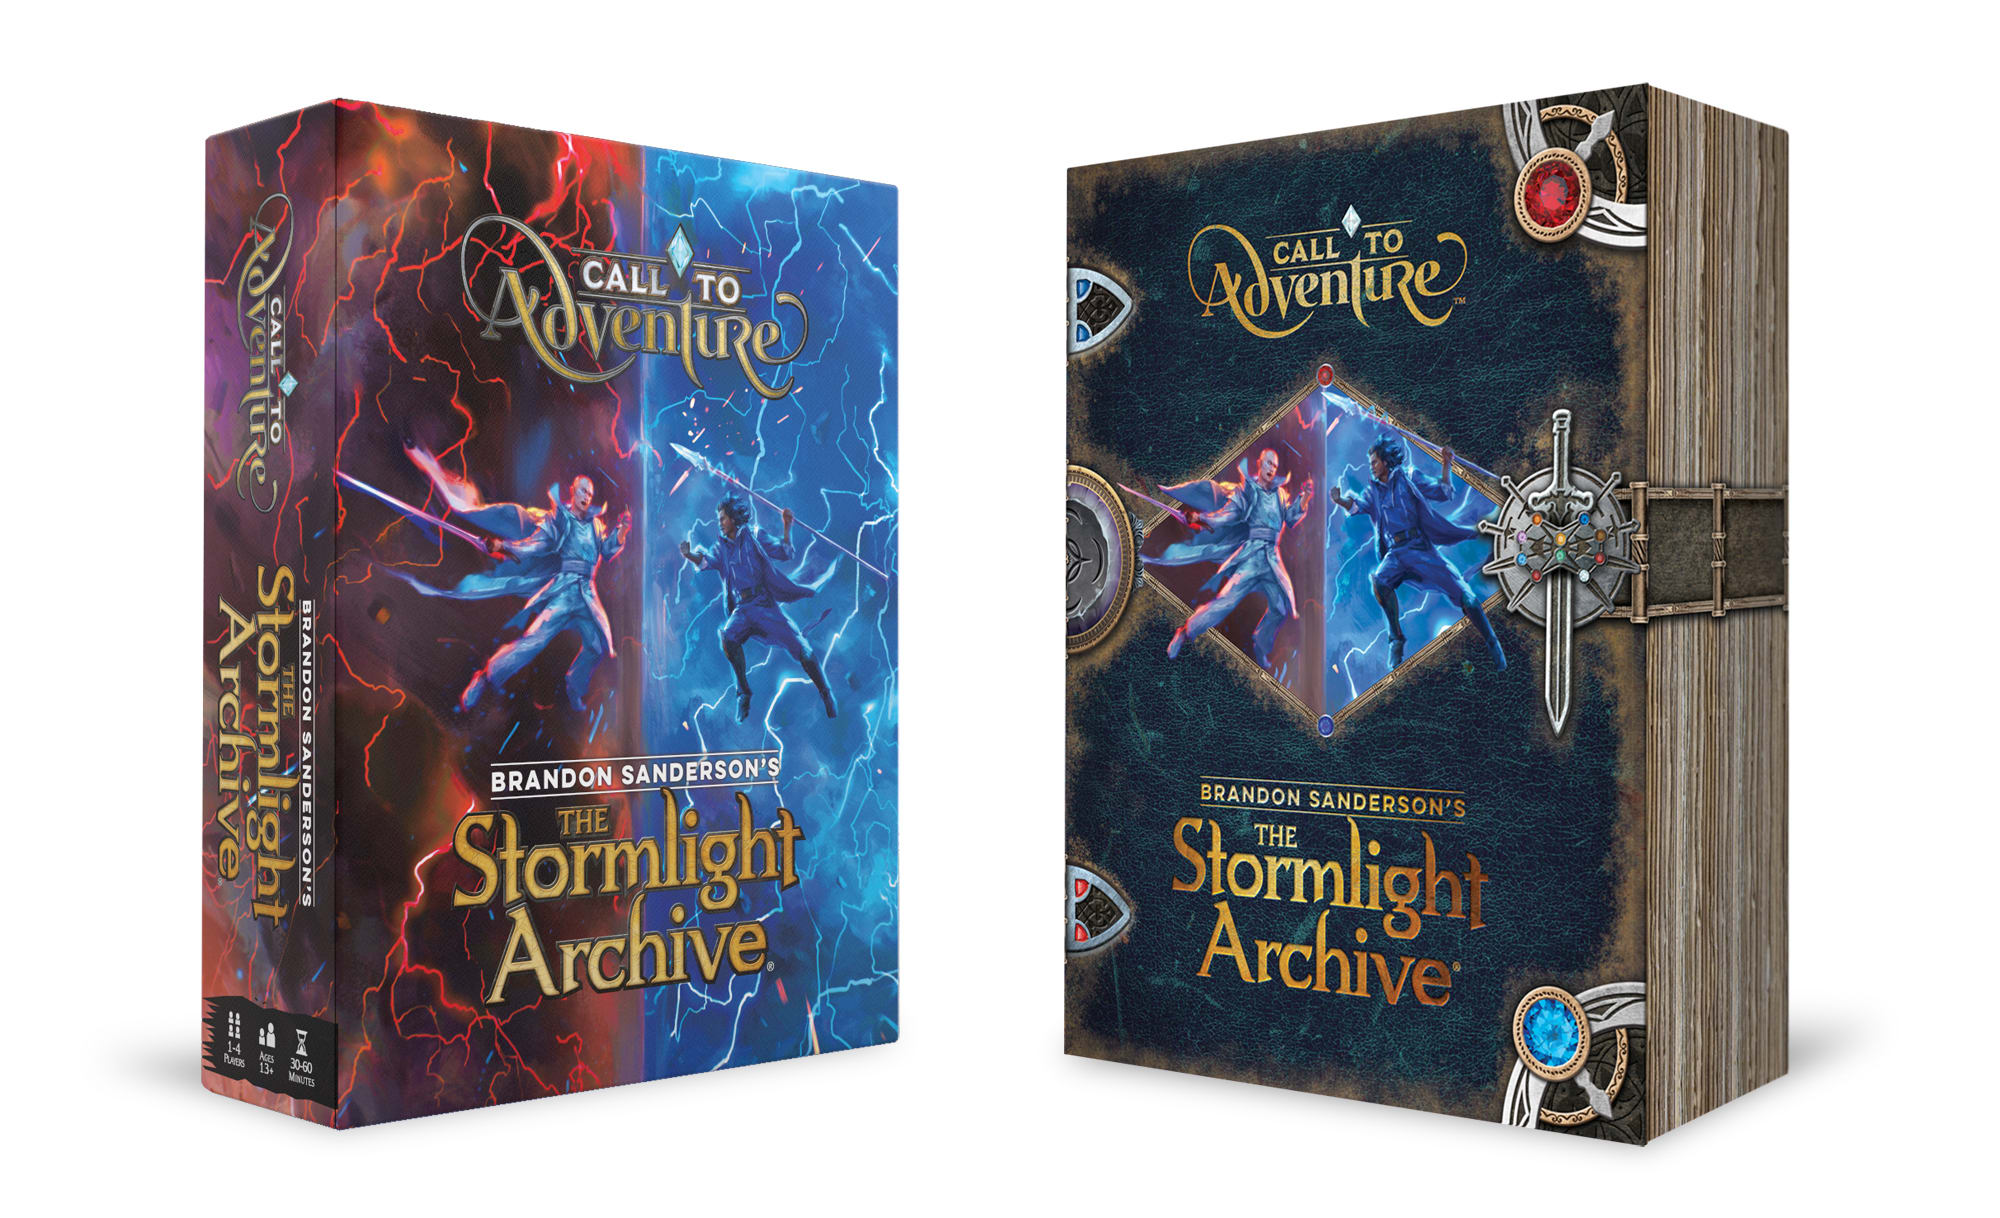 Exclusive sneak peek at the Stormlight Archive board game